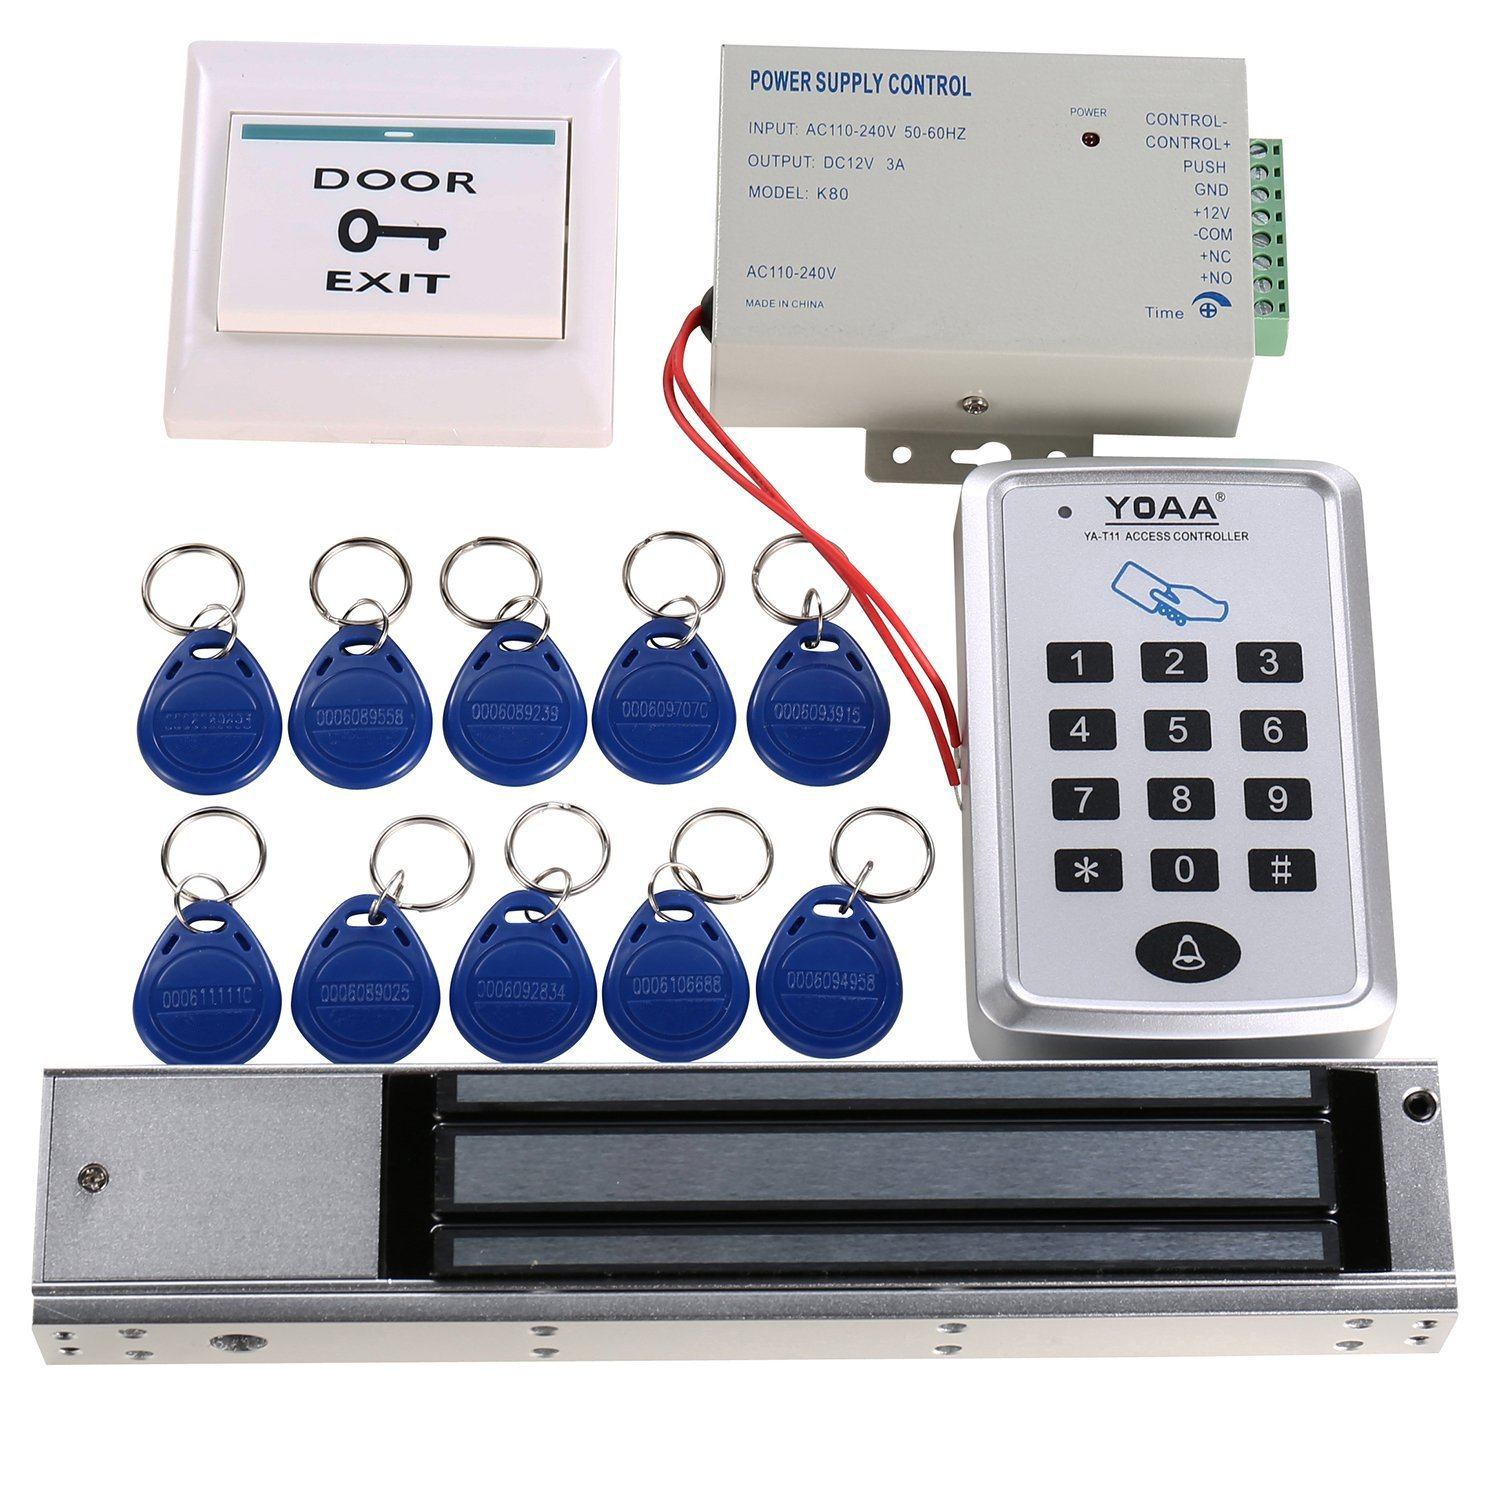 HWMATE Access Control System Kit With Keypad Power Supply 280kg Holding Force Magnetic Lock Exit Button Keyfobs For Single Door